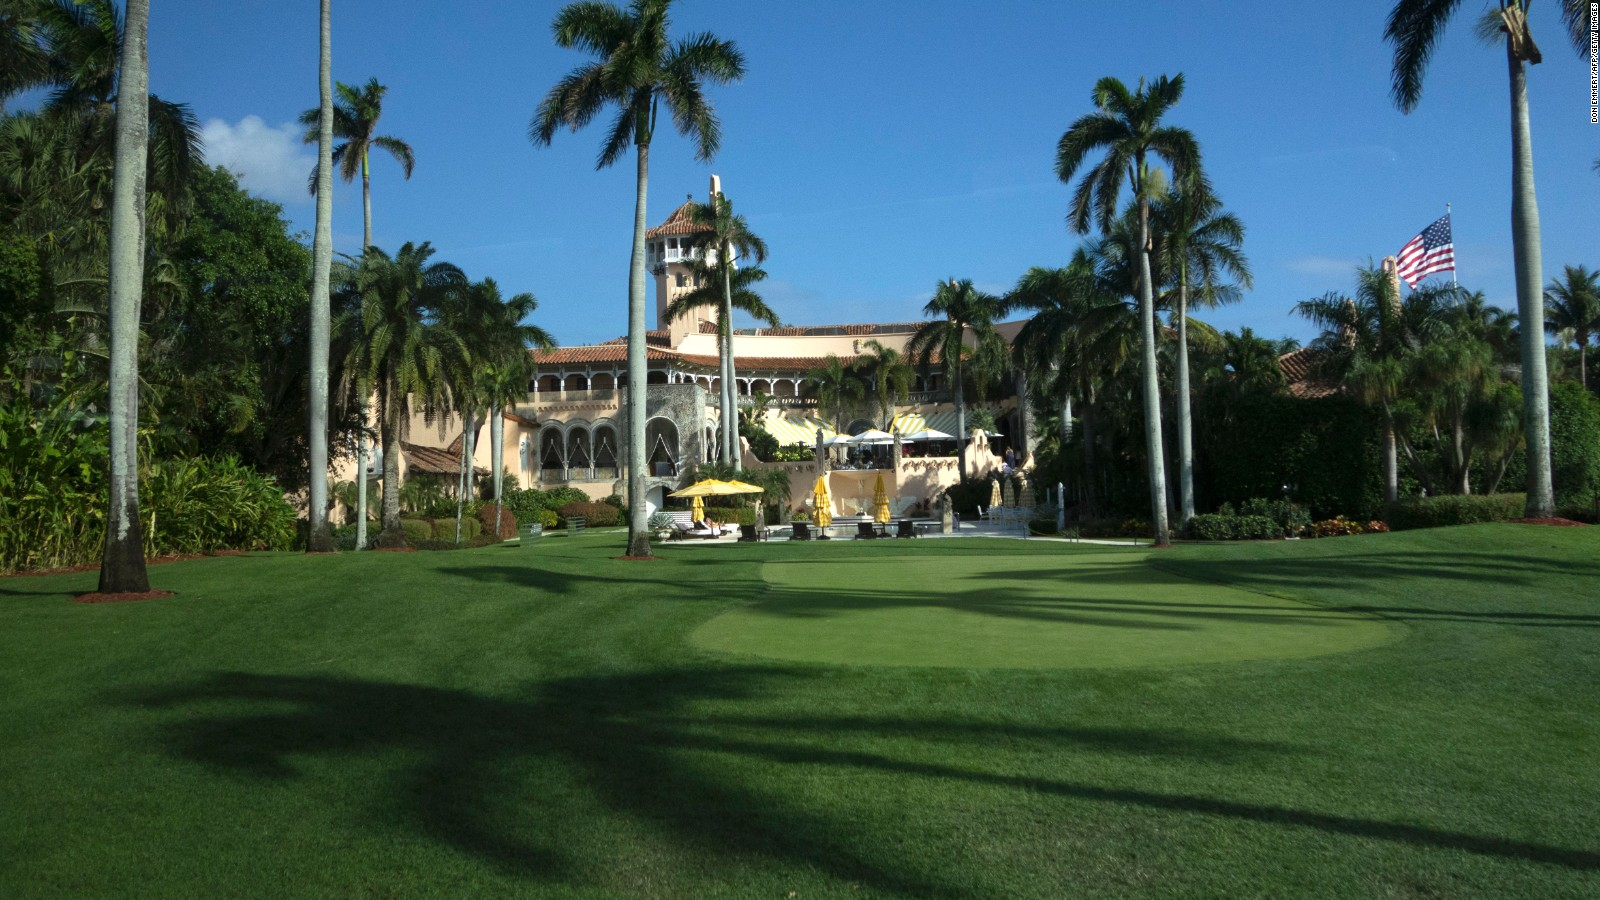 Facing soaring costs, Palm Beach officials ask Trump to pay up ...